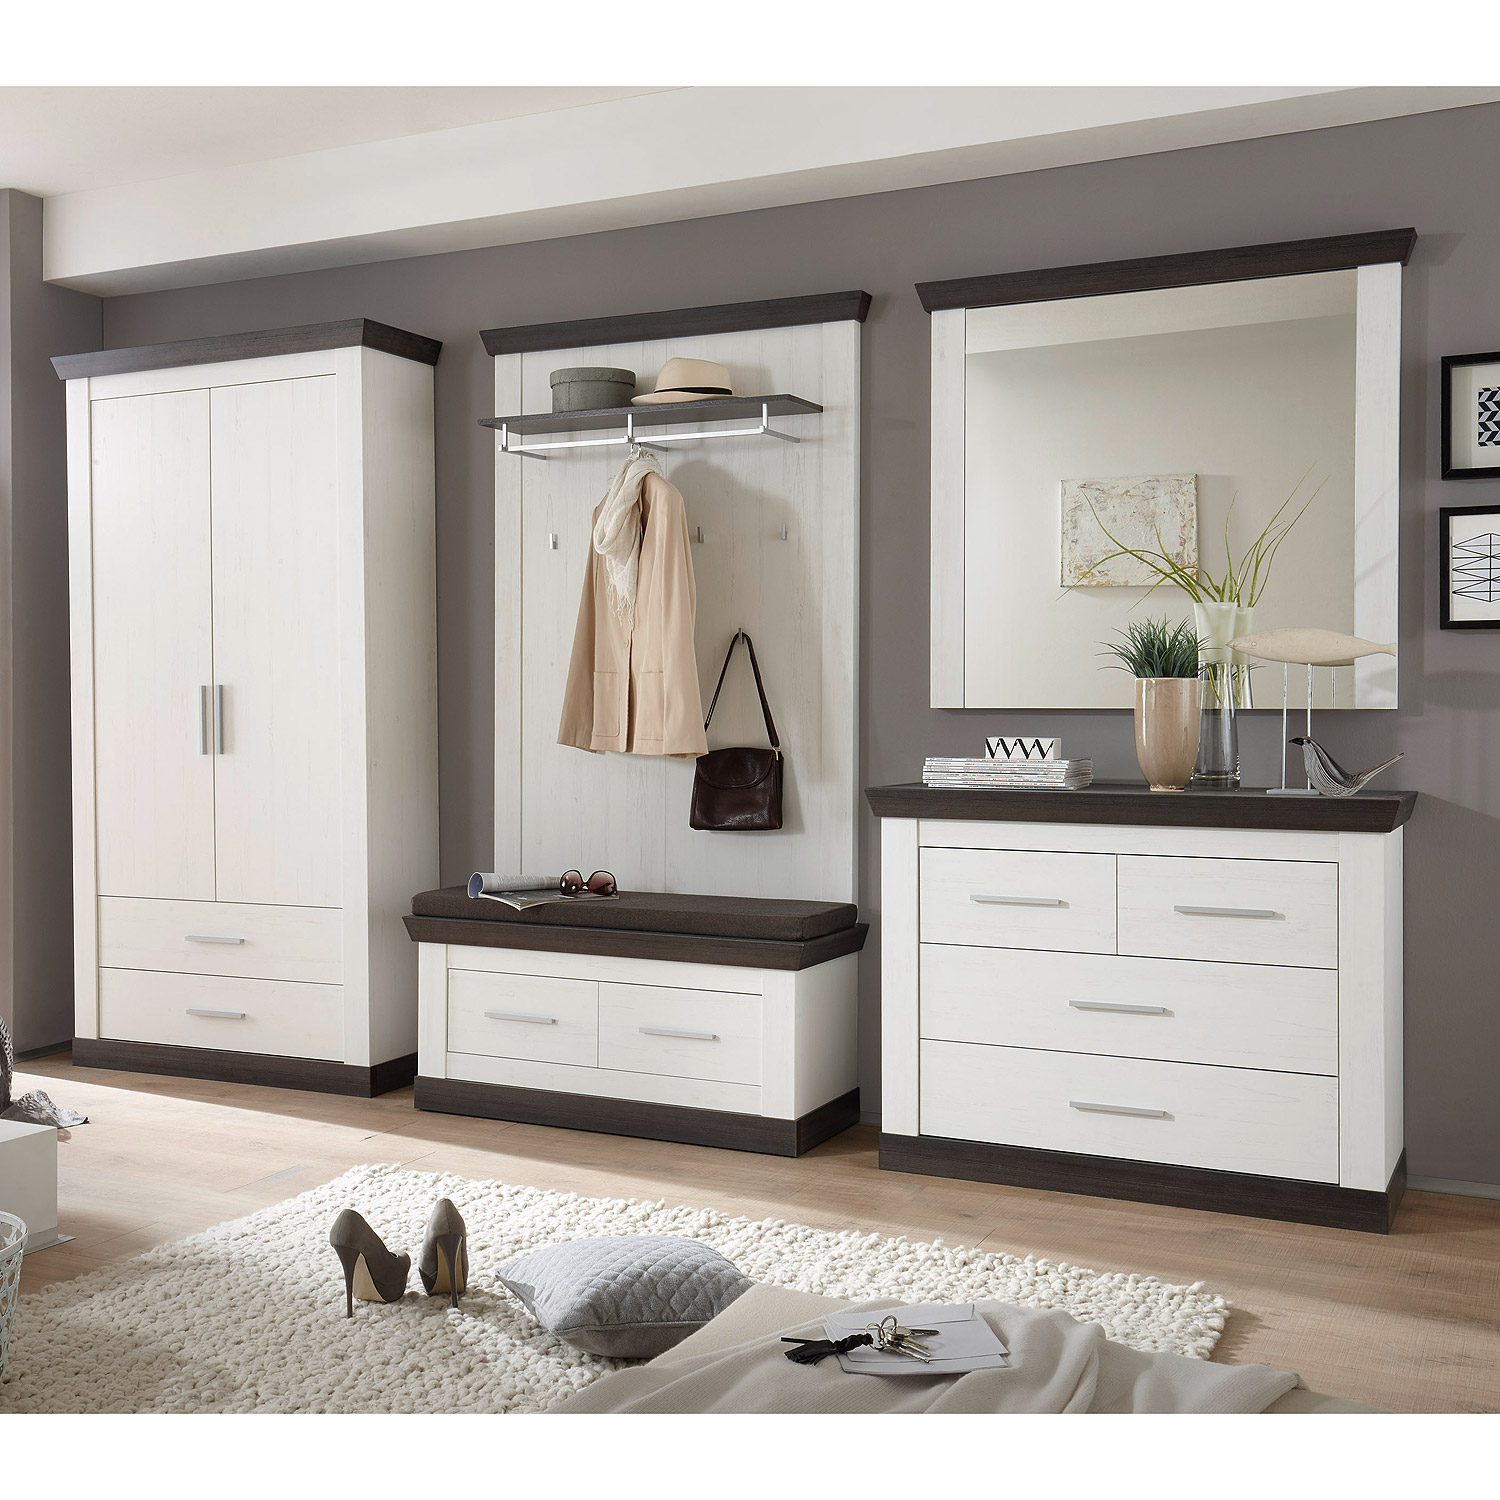 garderobenset tiena 2 schrank bank paneel in pinie wei wenge haptik ebay. Black Bedroom Furniture Sets. Home Design Ideas